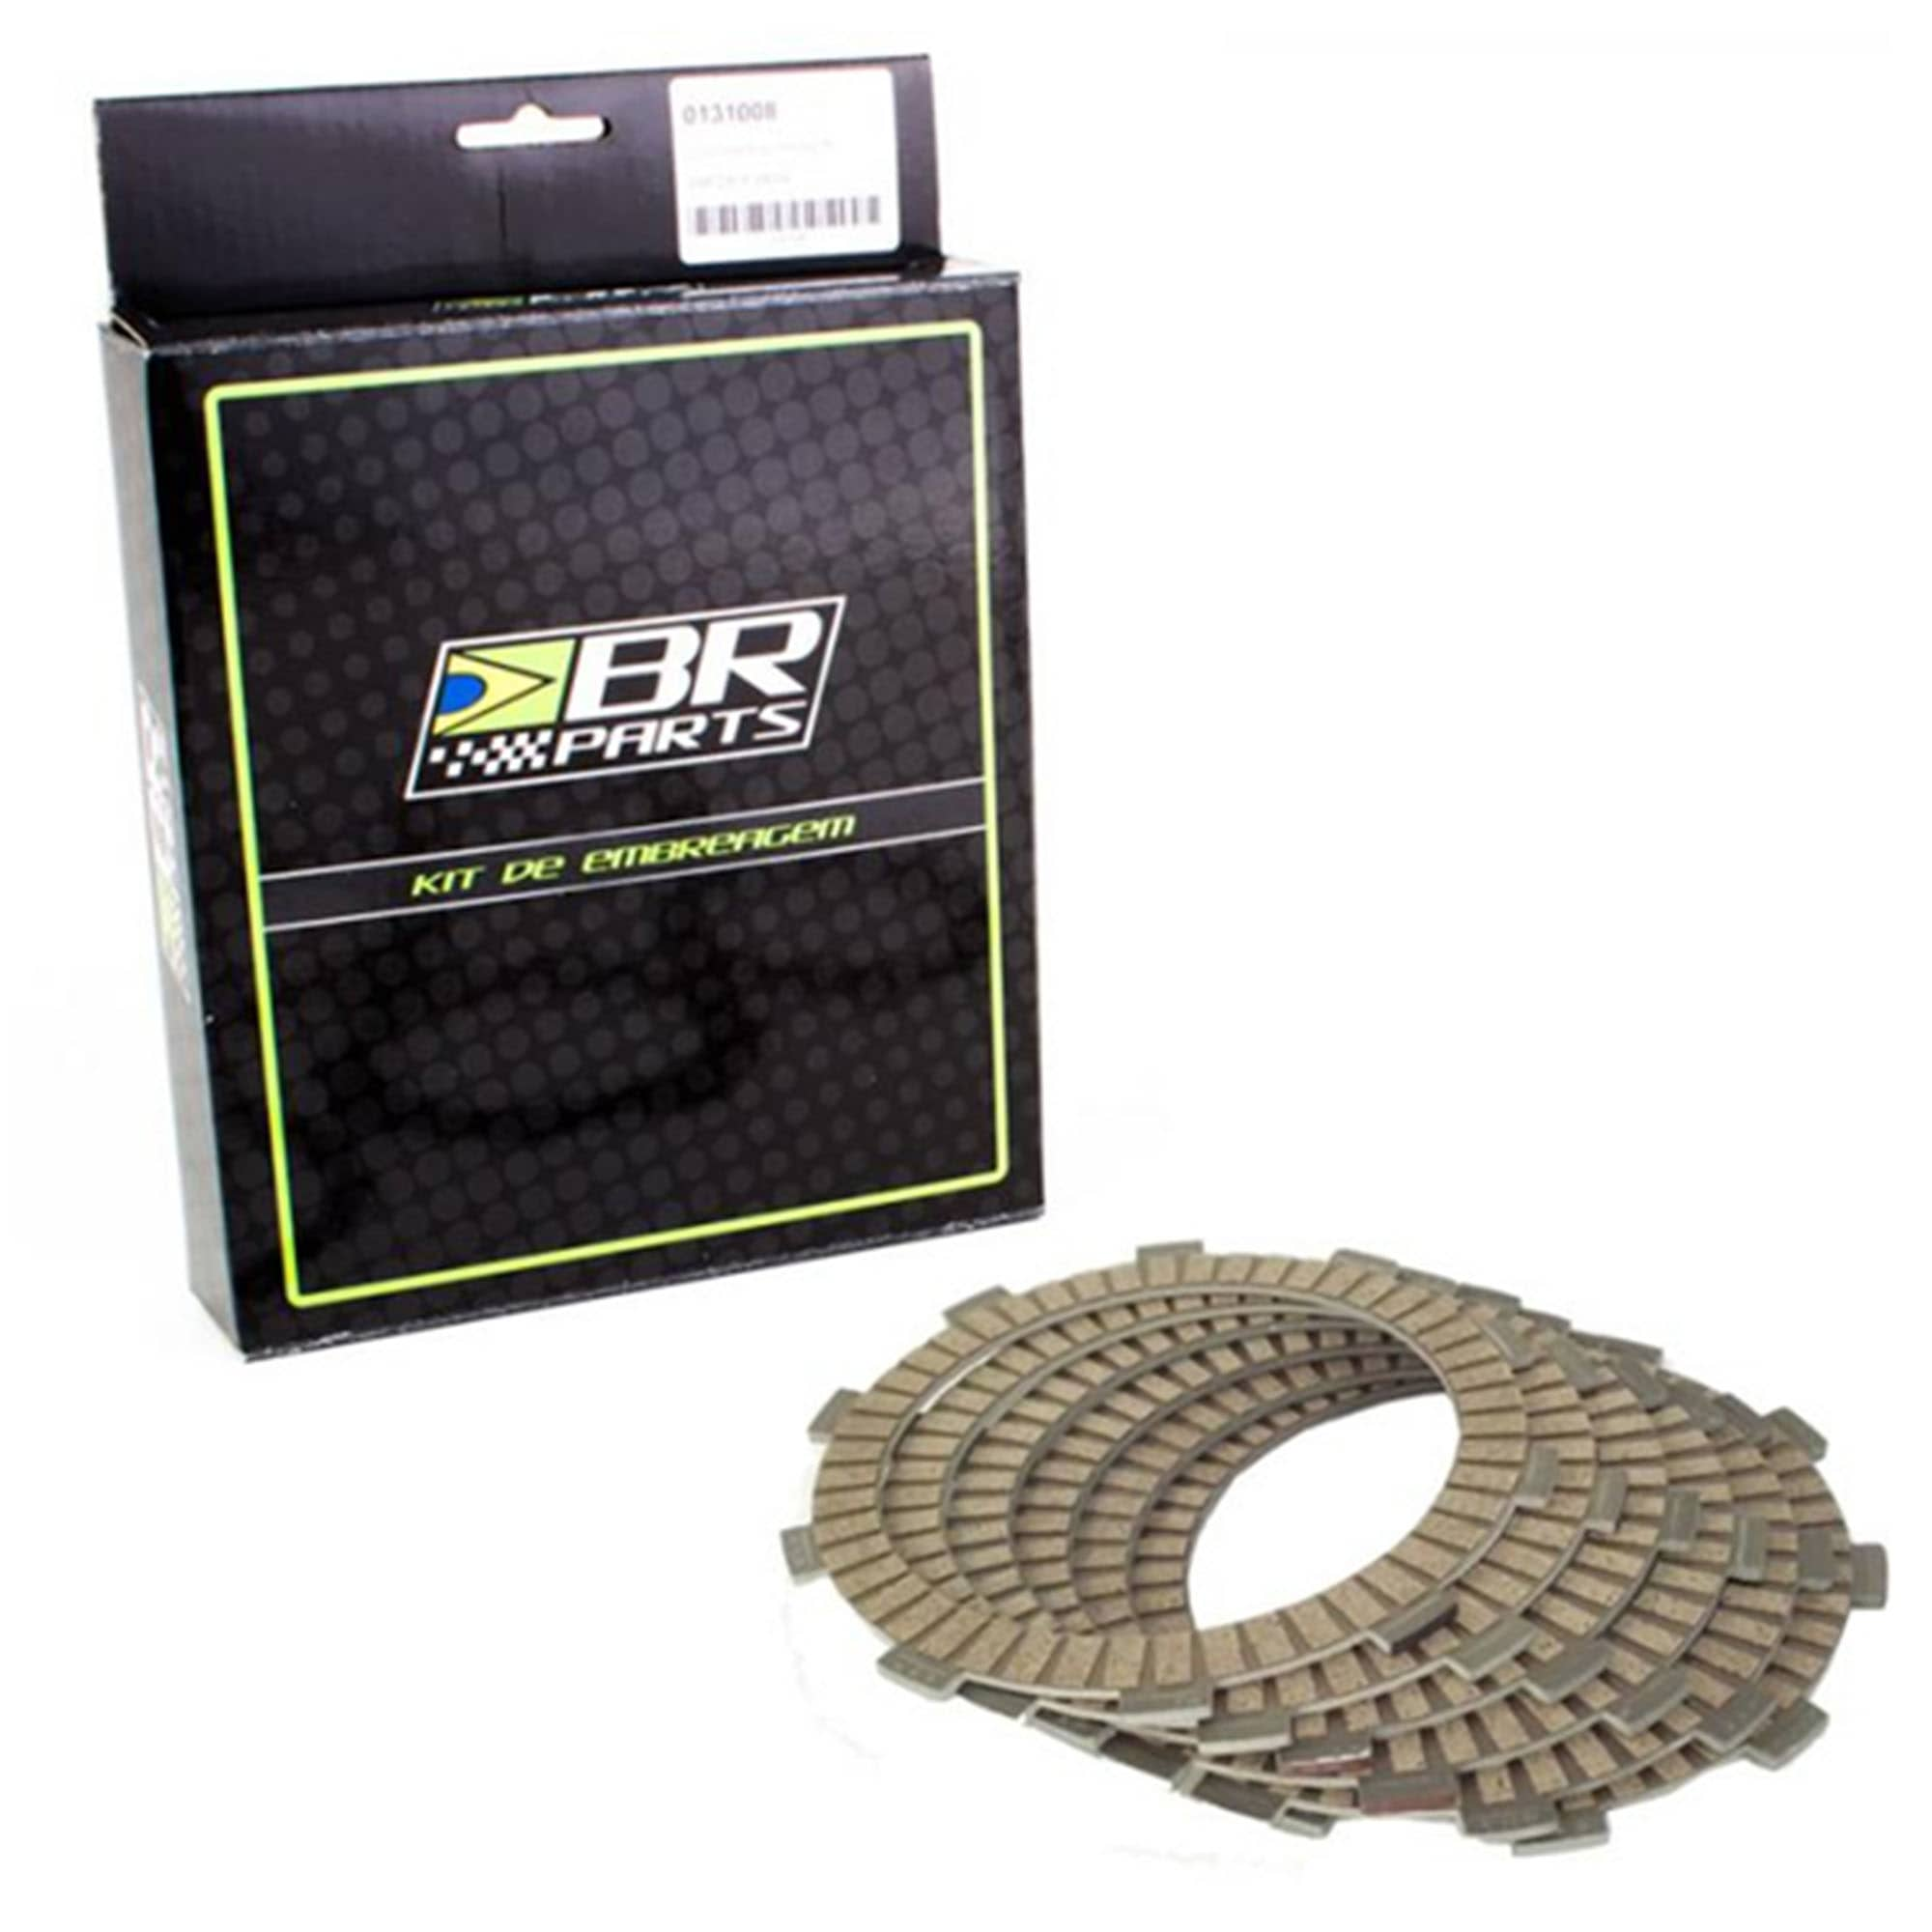 Kit de Disco de Embreagem + Separadores BR Parts CRF 450 02/13  - HP Race Off Road